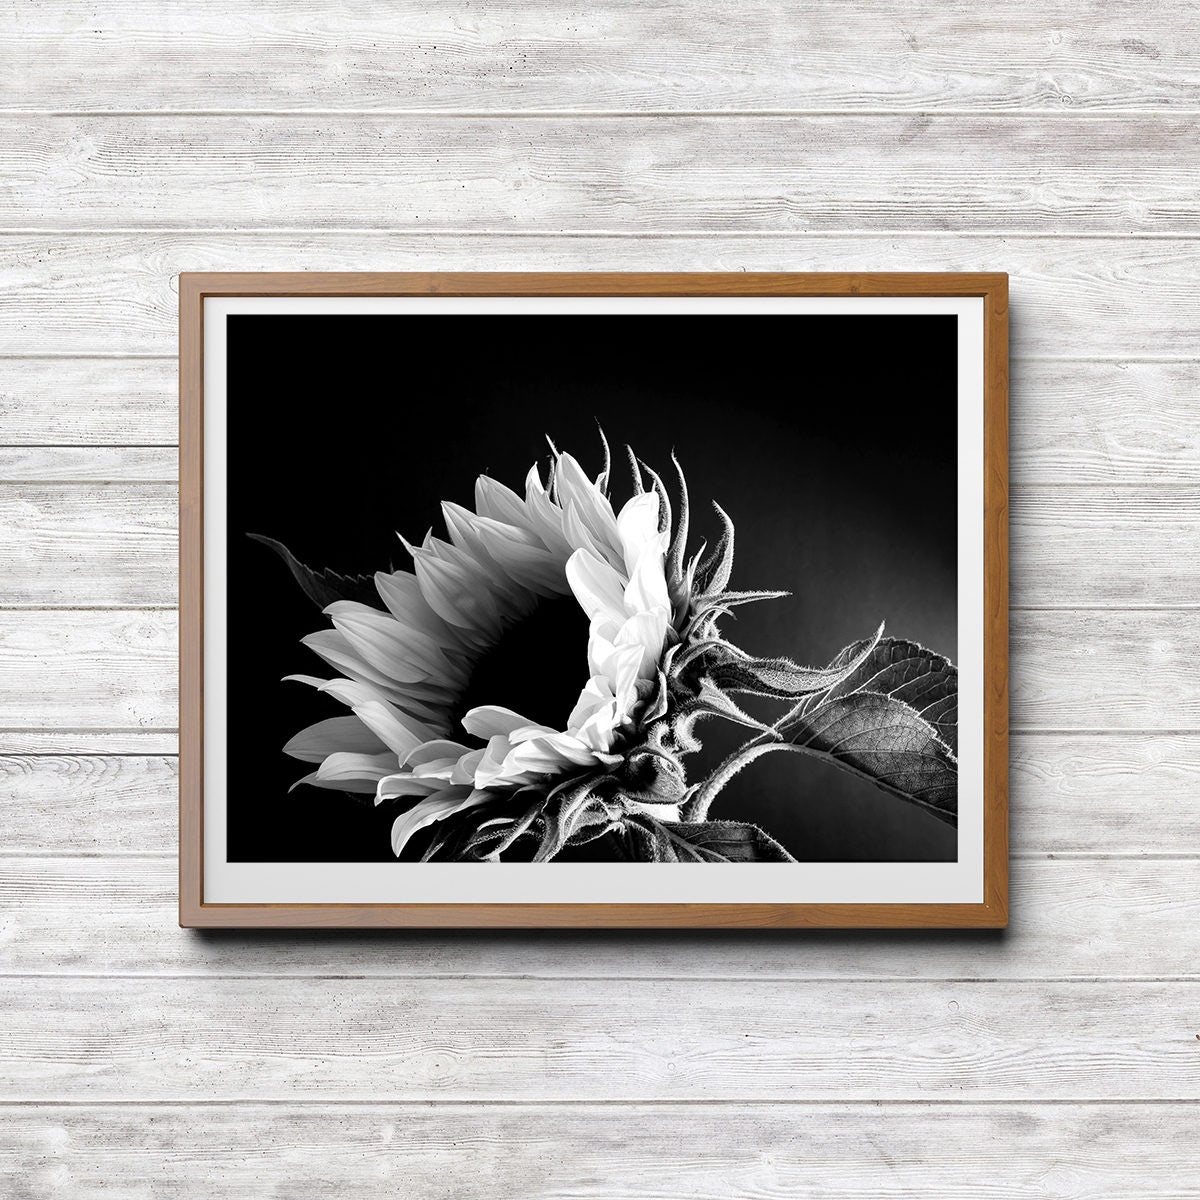 sonnenblume schwarz wei fotografie sofort poster download. Black Bedroom Furniture Sets. Home Design Ideas